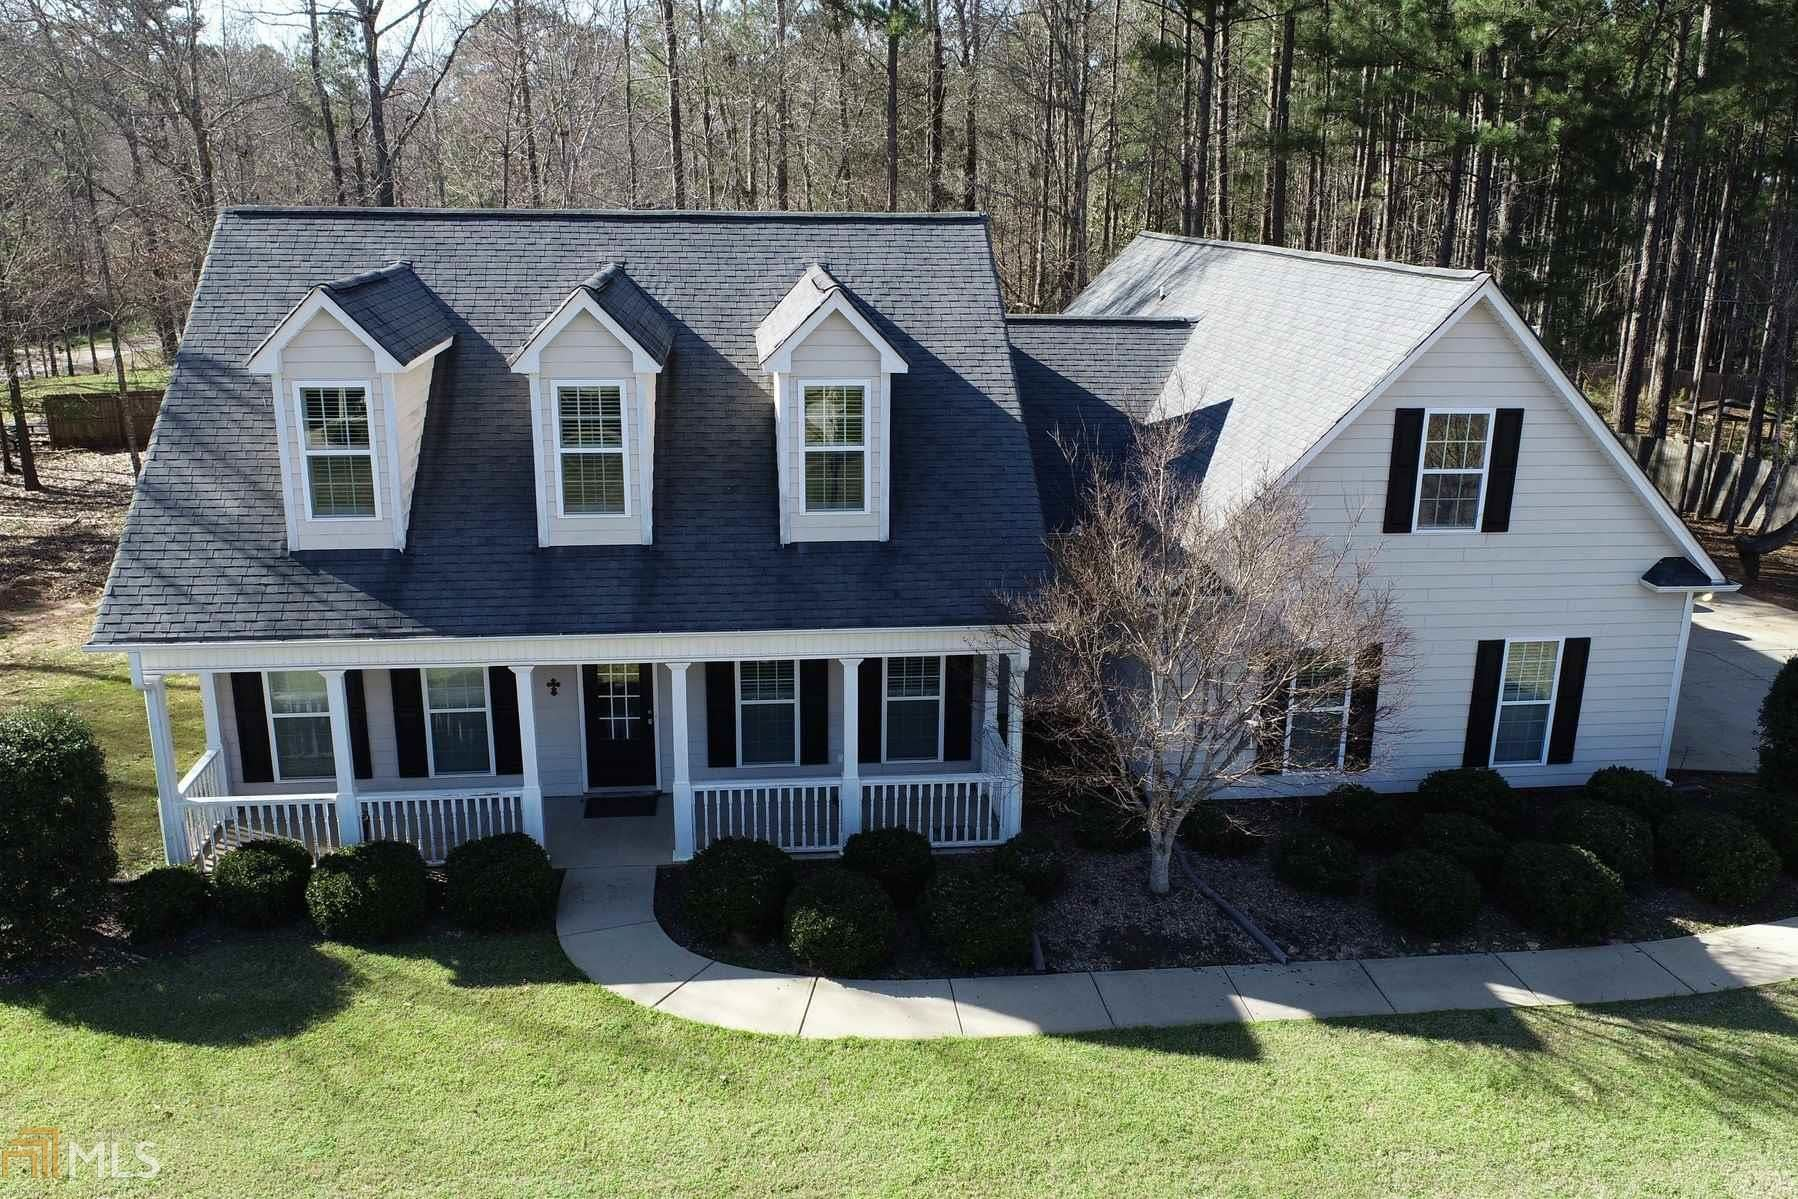 101 Hidden Springs Dr, LaGrange, GA 30240 - #: 8745858